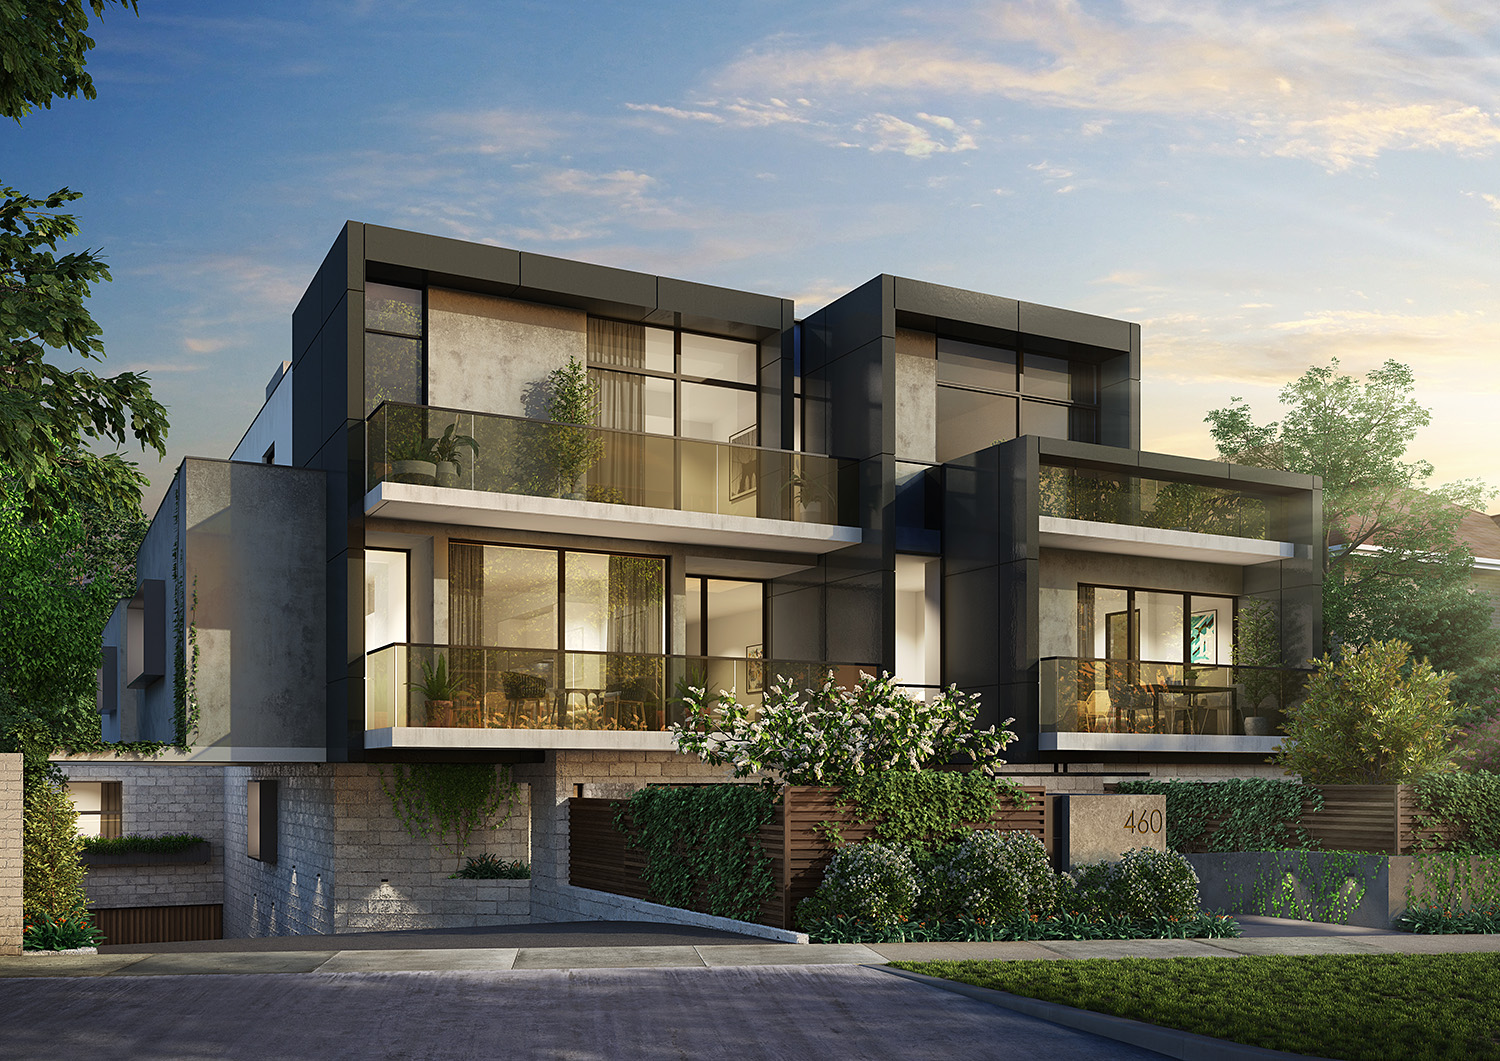 Exterior 3d rendering marketing 3d renders melbourne for Exterior 3d rendering